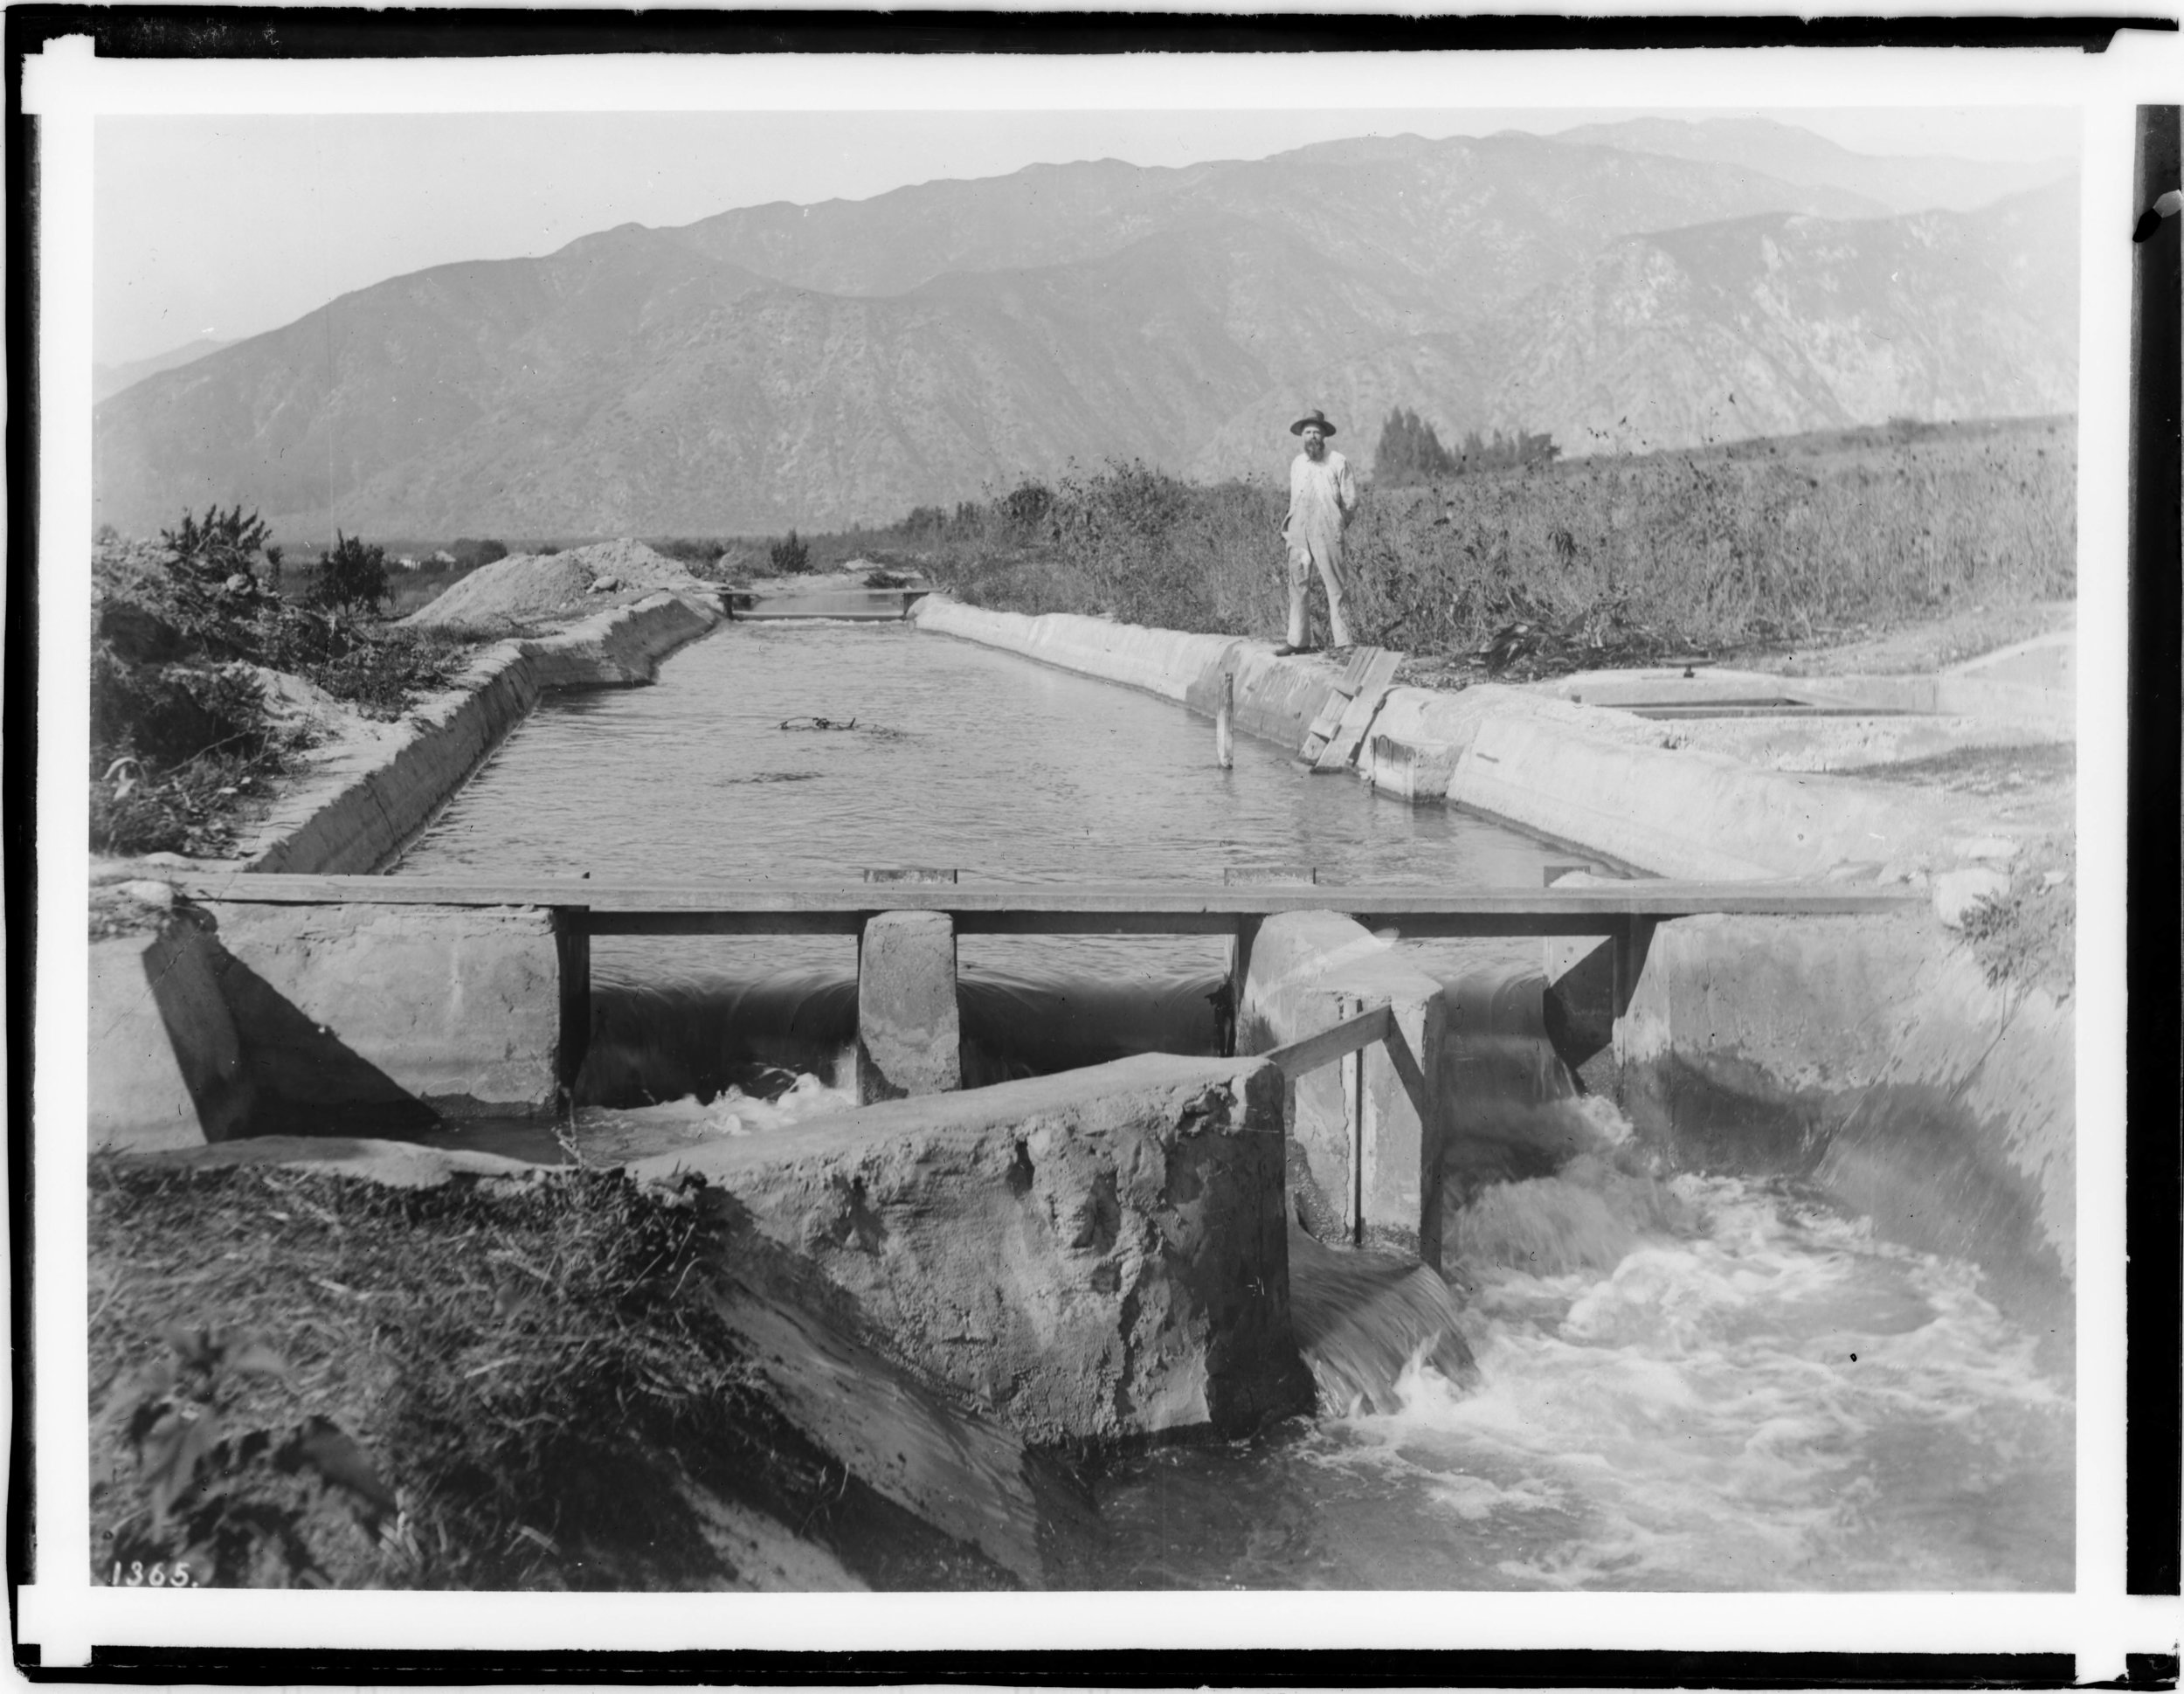 Figure 2: Main irrigation ditch in the San Gabriel Canyon, ca.1900